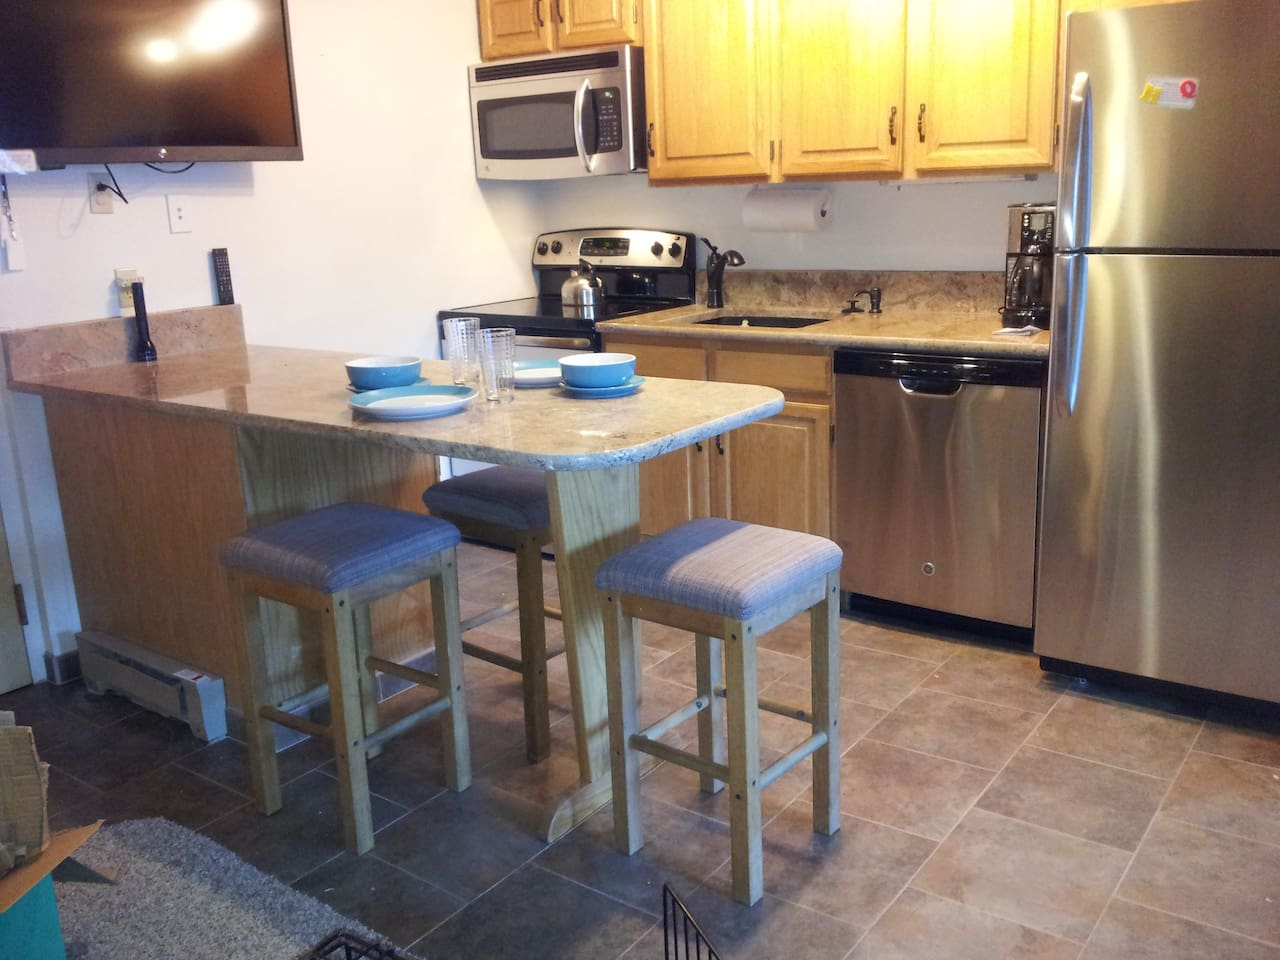 Full kitchen with granite counter tops and sink and stainlines steel appliances